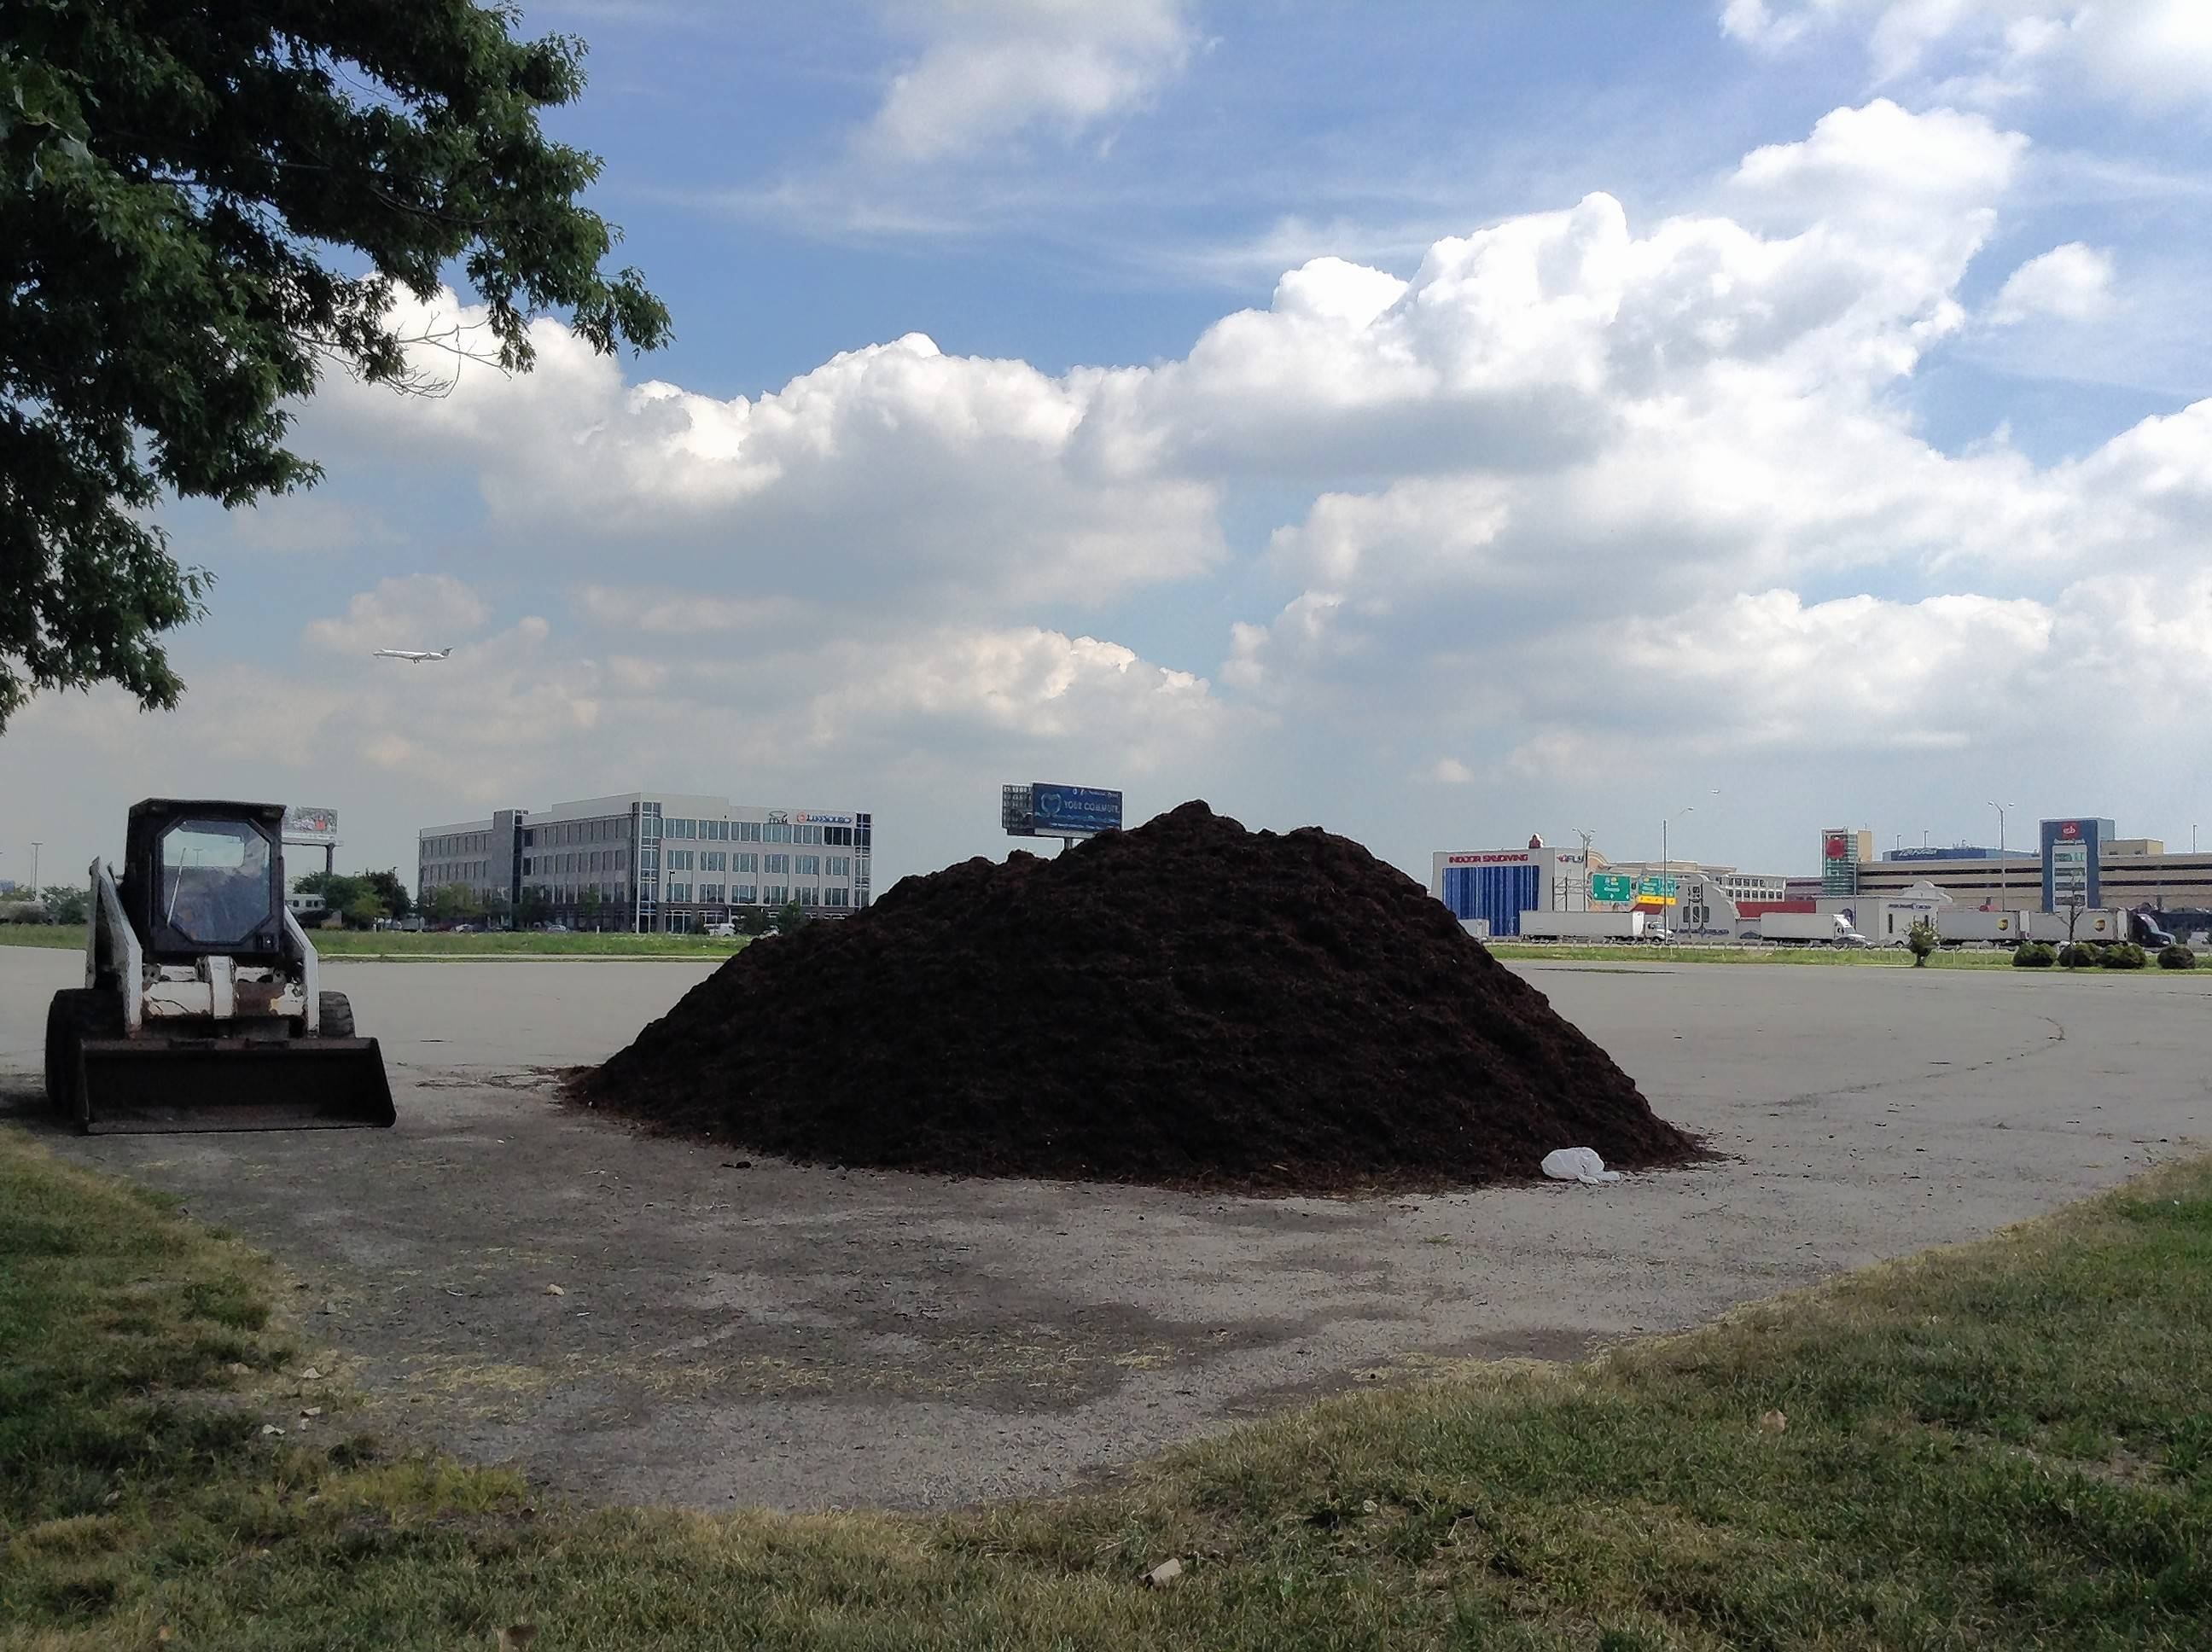 A pile of dirt and tractor sit on land where a $55 million minor league baseball stadium is planned in Rosemont. Construction could begin in the next 60 days, officials said.